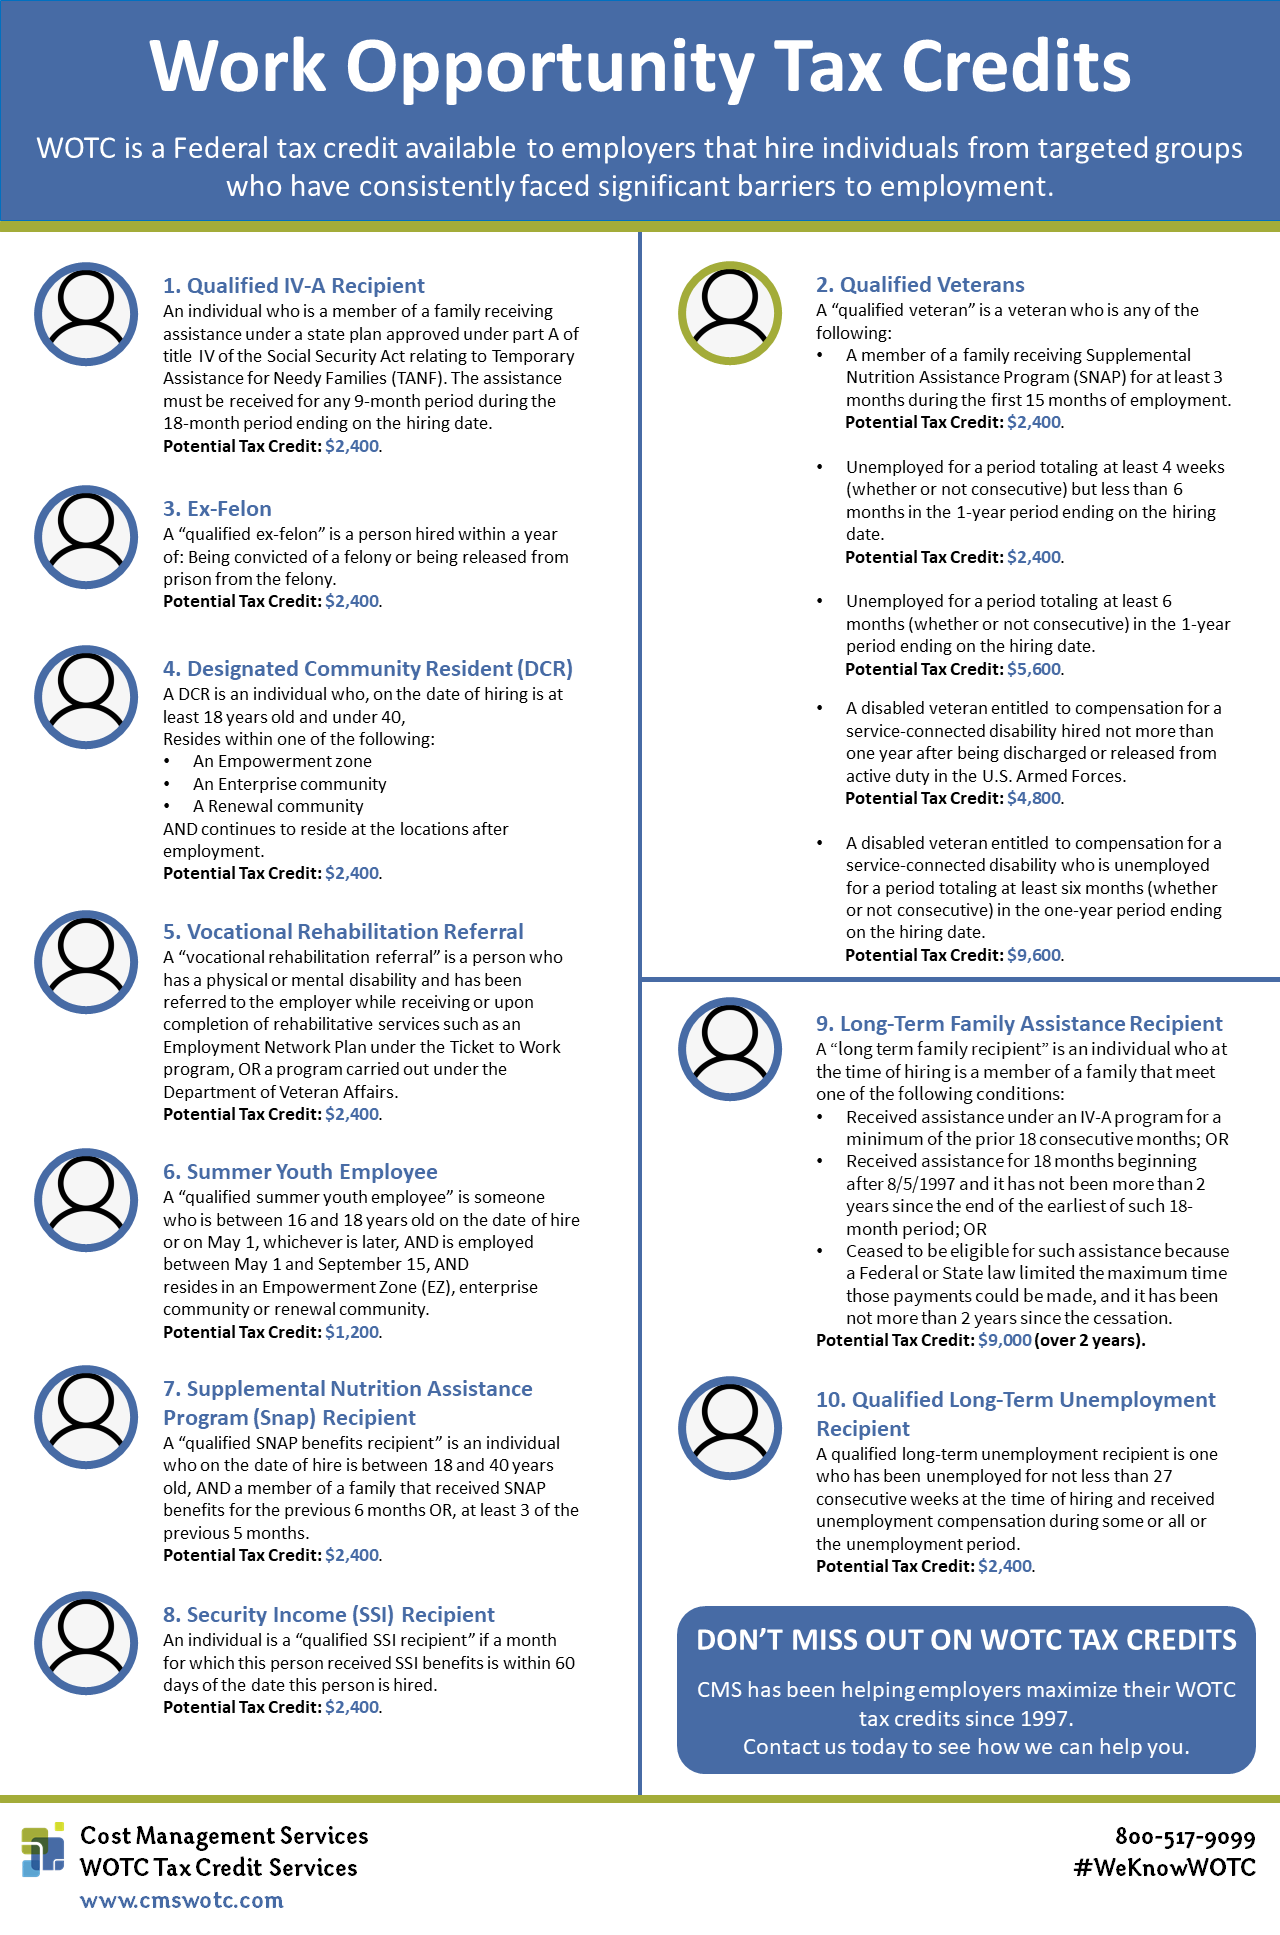 Work-Opportunity-Tax-Credit-Target-Groups-Infographic